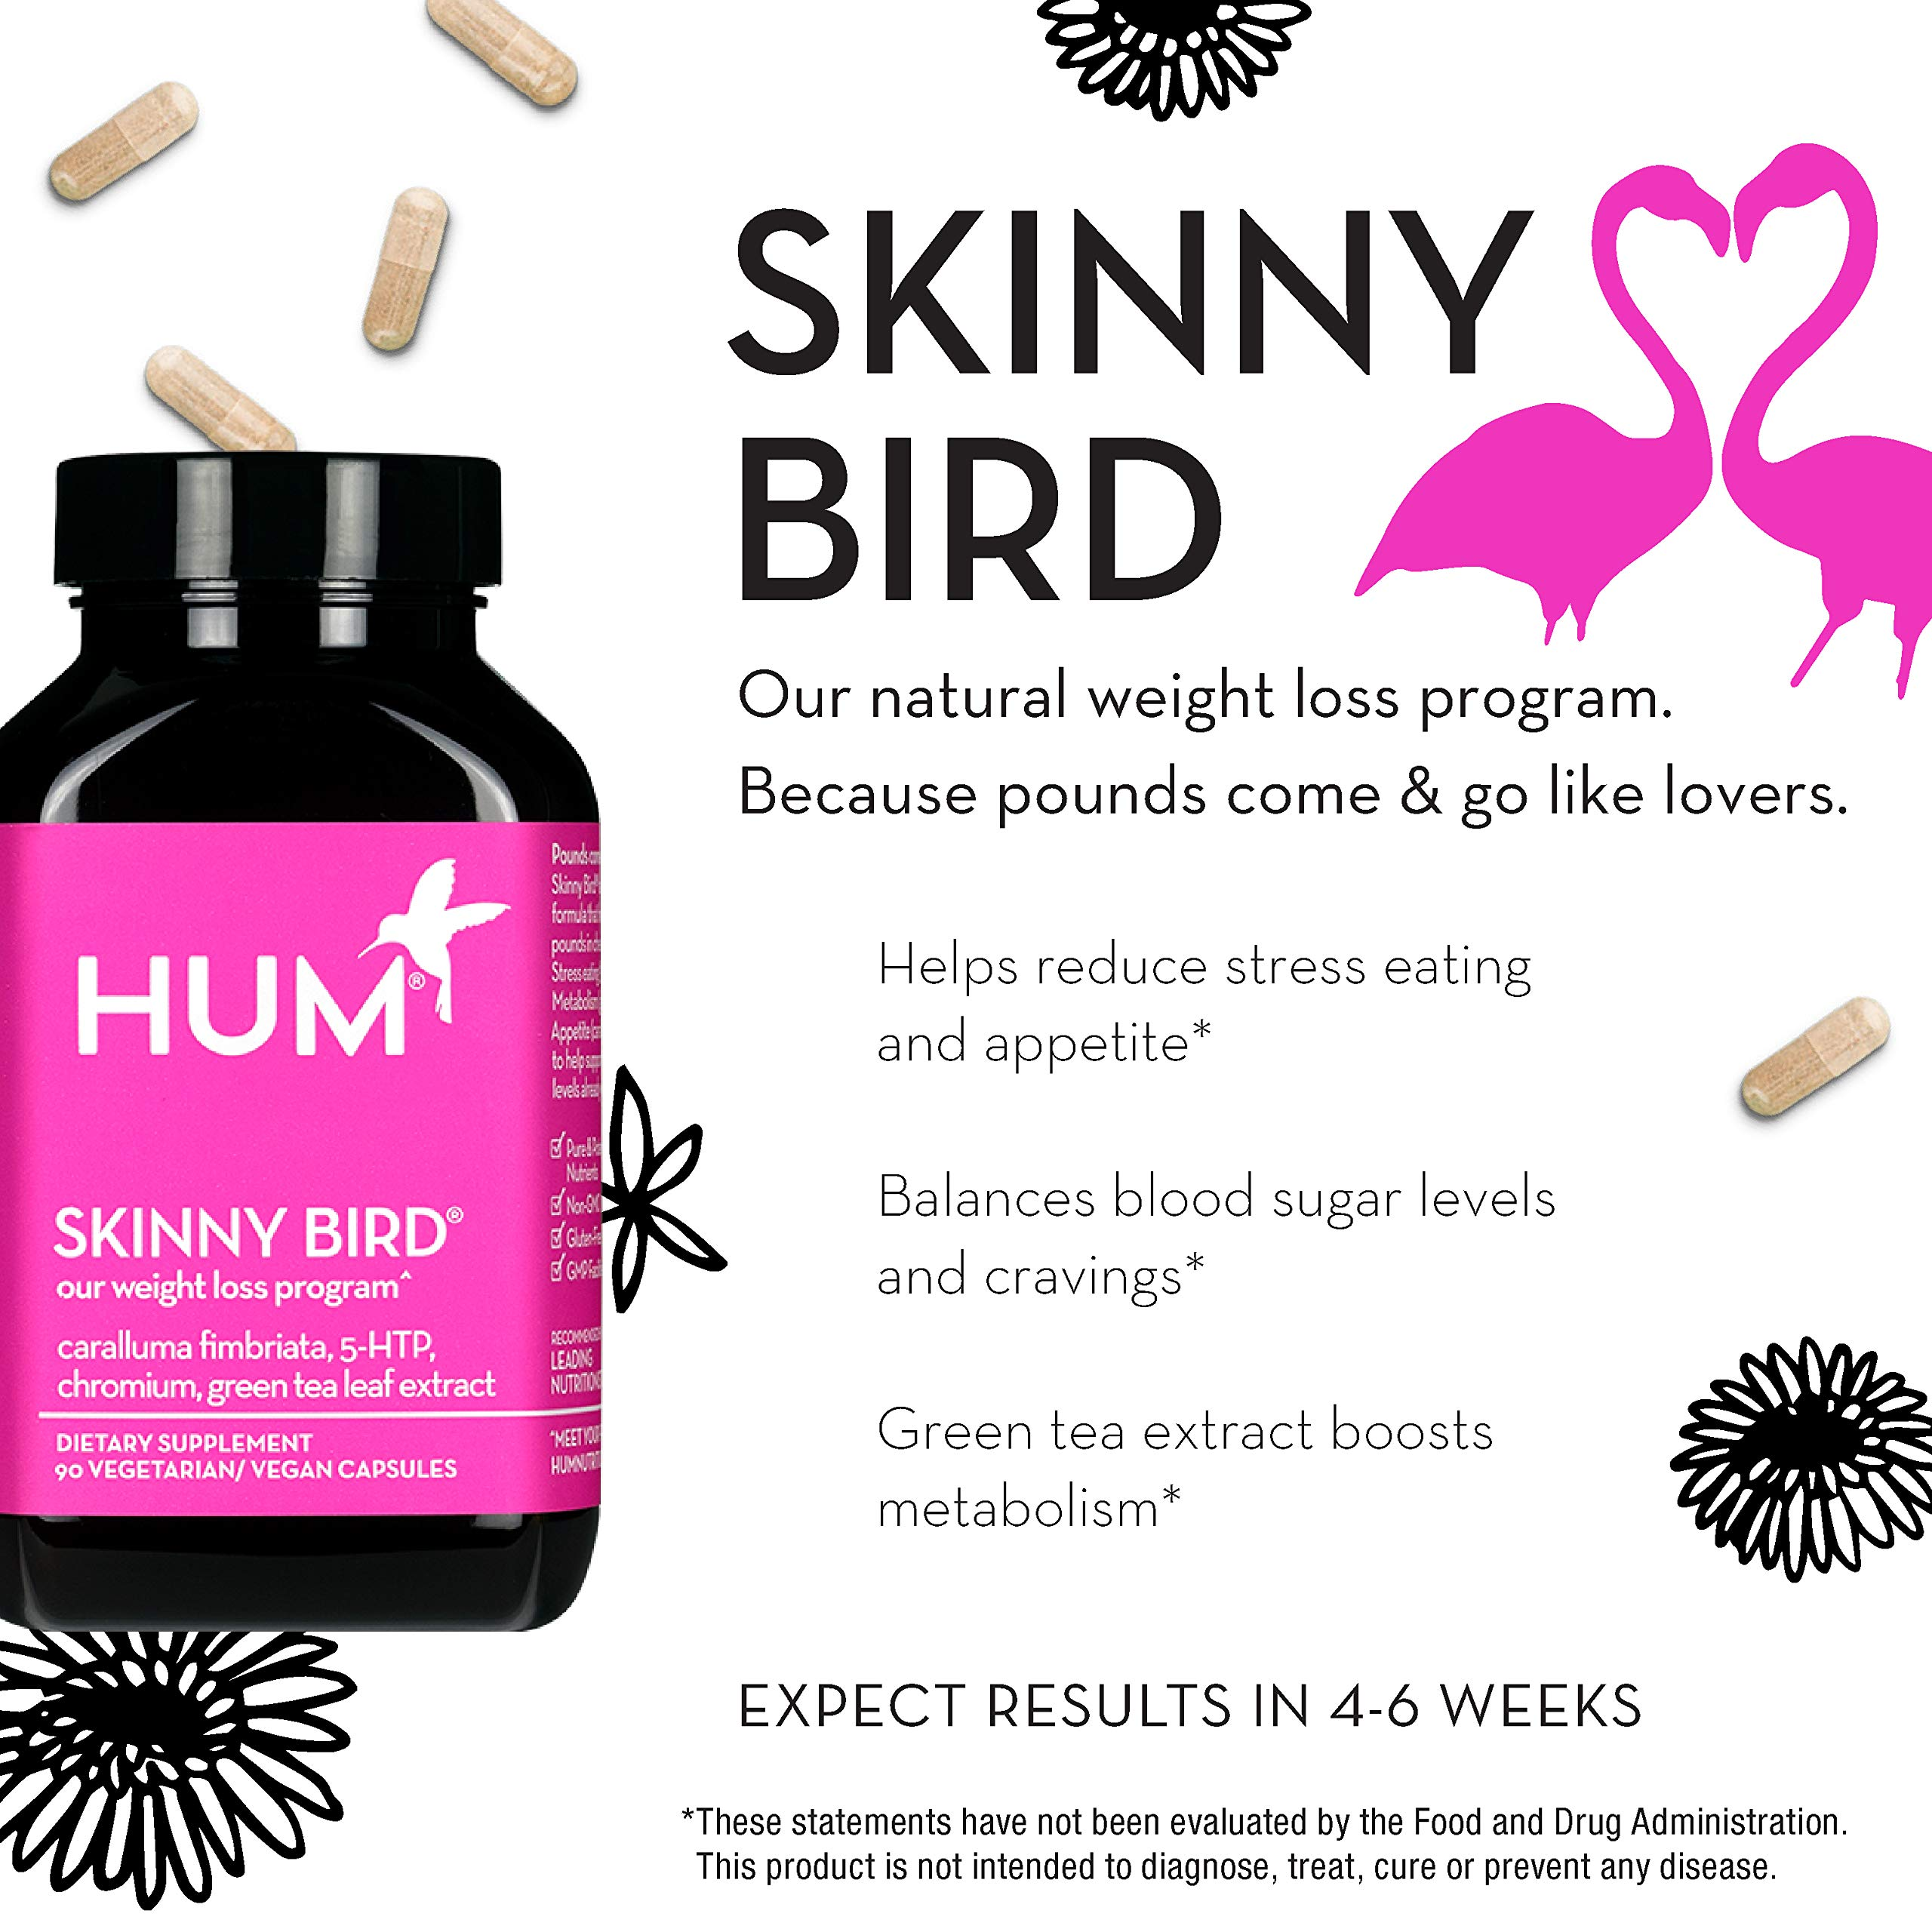 HUM Skinny Bird - Weight Management Support with Green Tea Extract, 5-HTP, Chromium & Caralluma Fimbriata (90 Vegan Capsules) by HUM (Image #3)